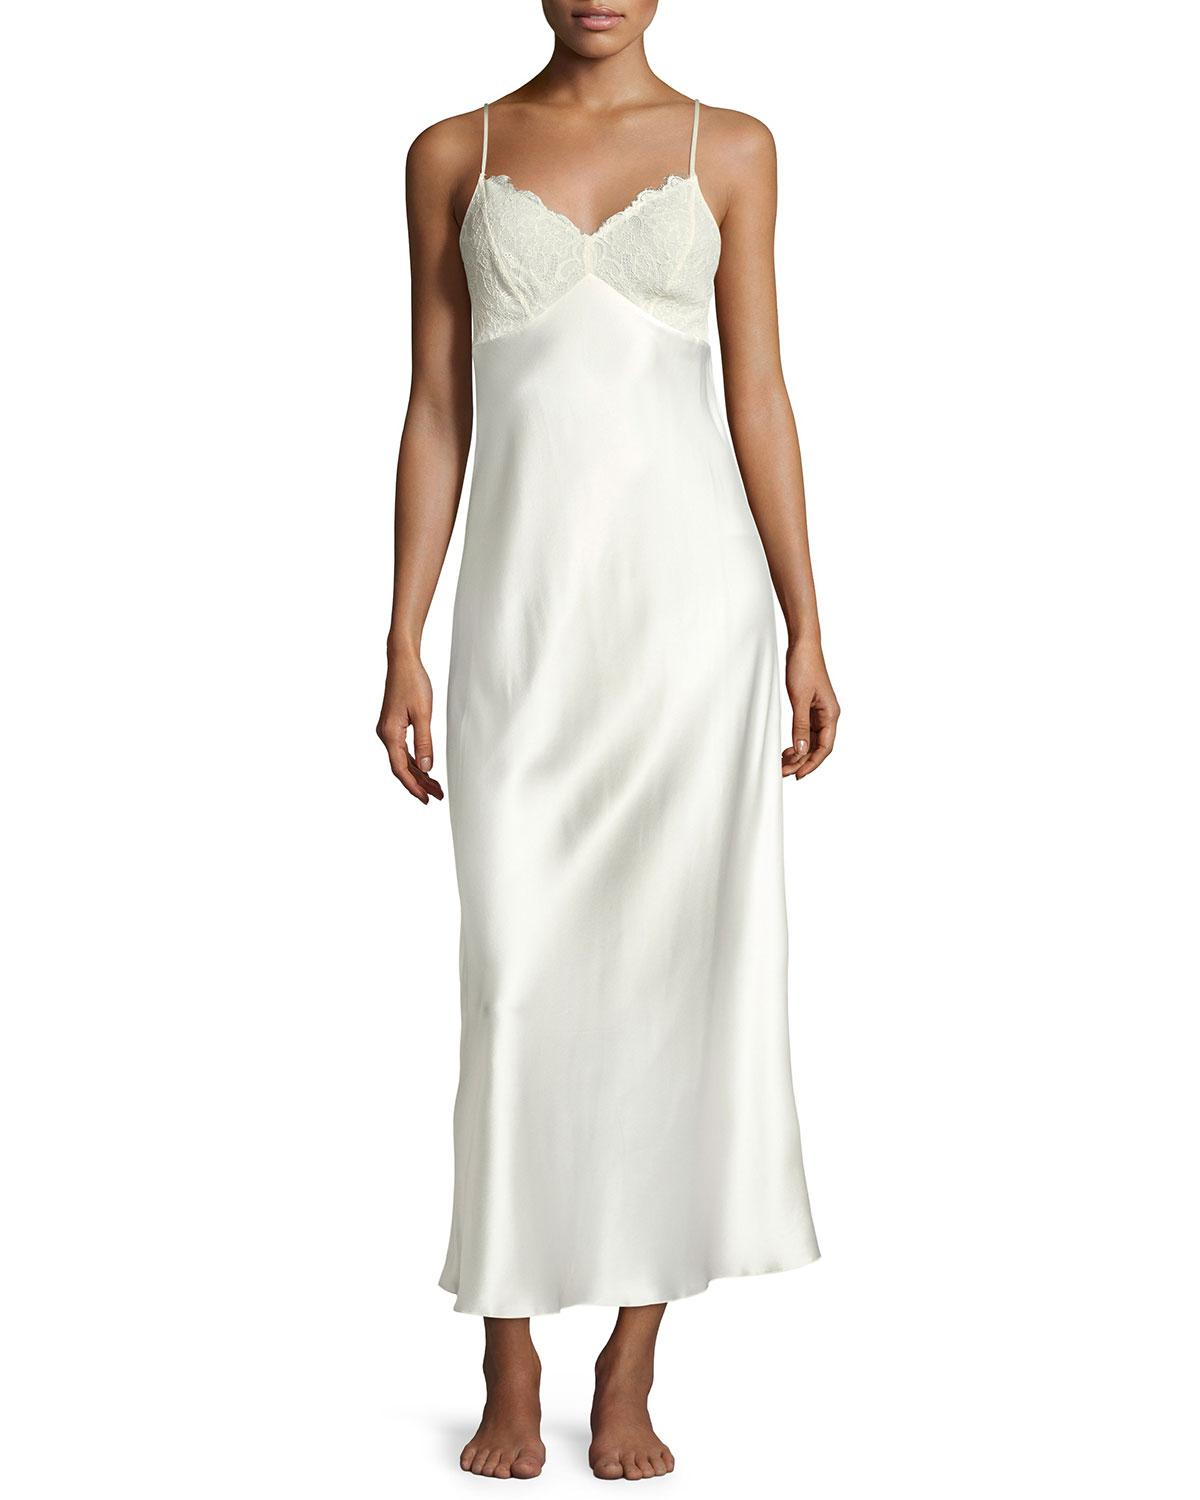 Lyst - Neiman Marcus Lace Gown in White